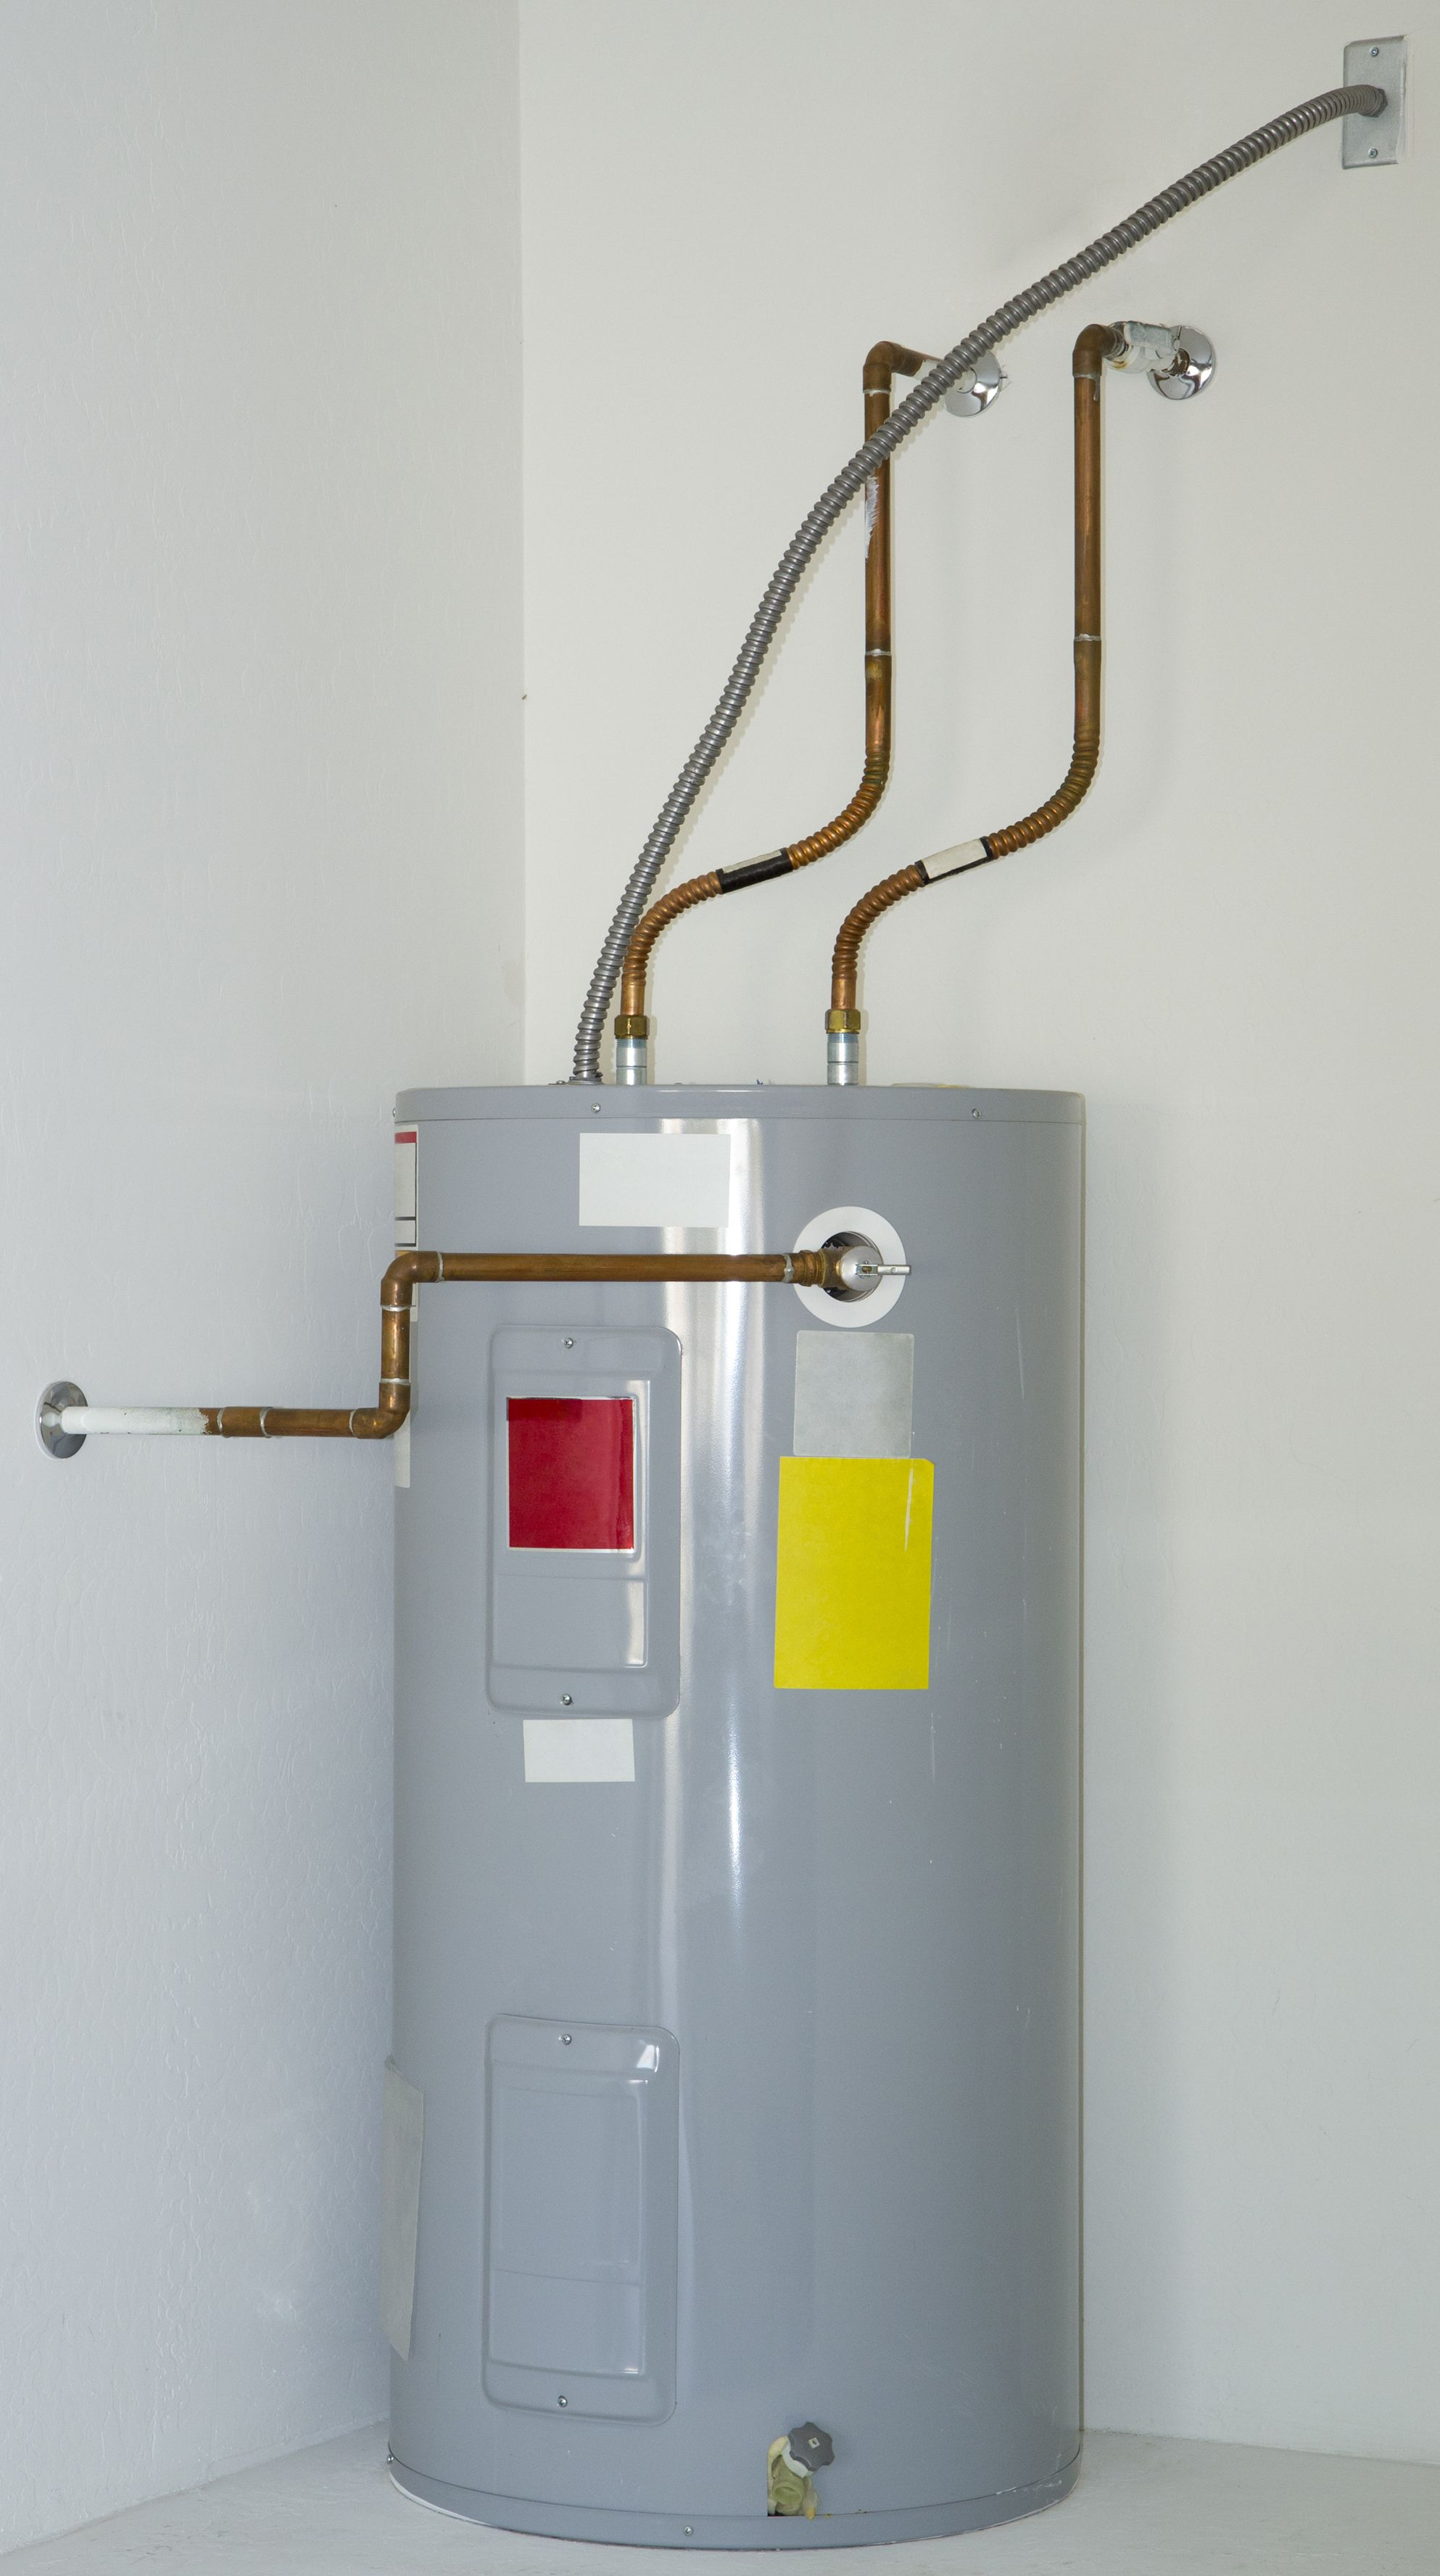 small resolution of can you replace a gas hot water heater with an electric one answer in order to install an electric hot water heater you